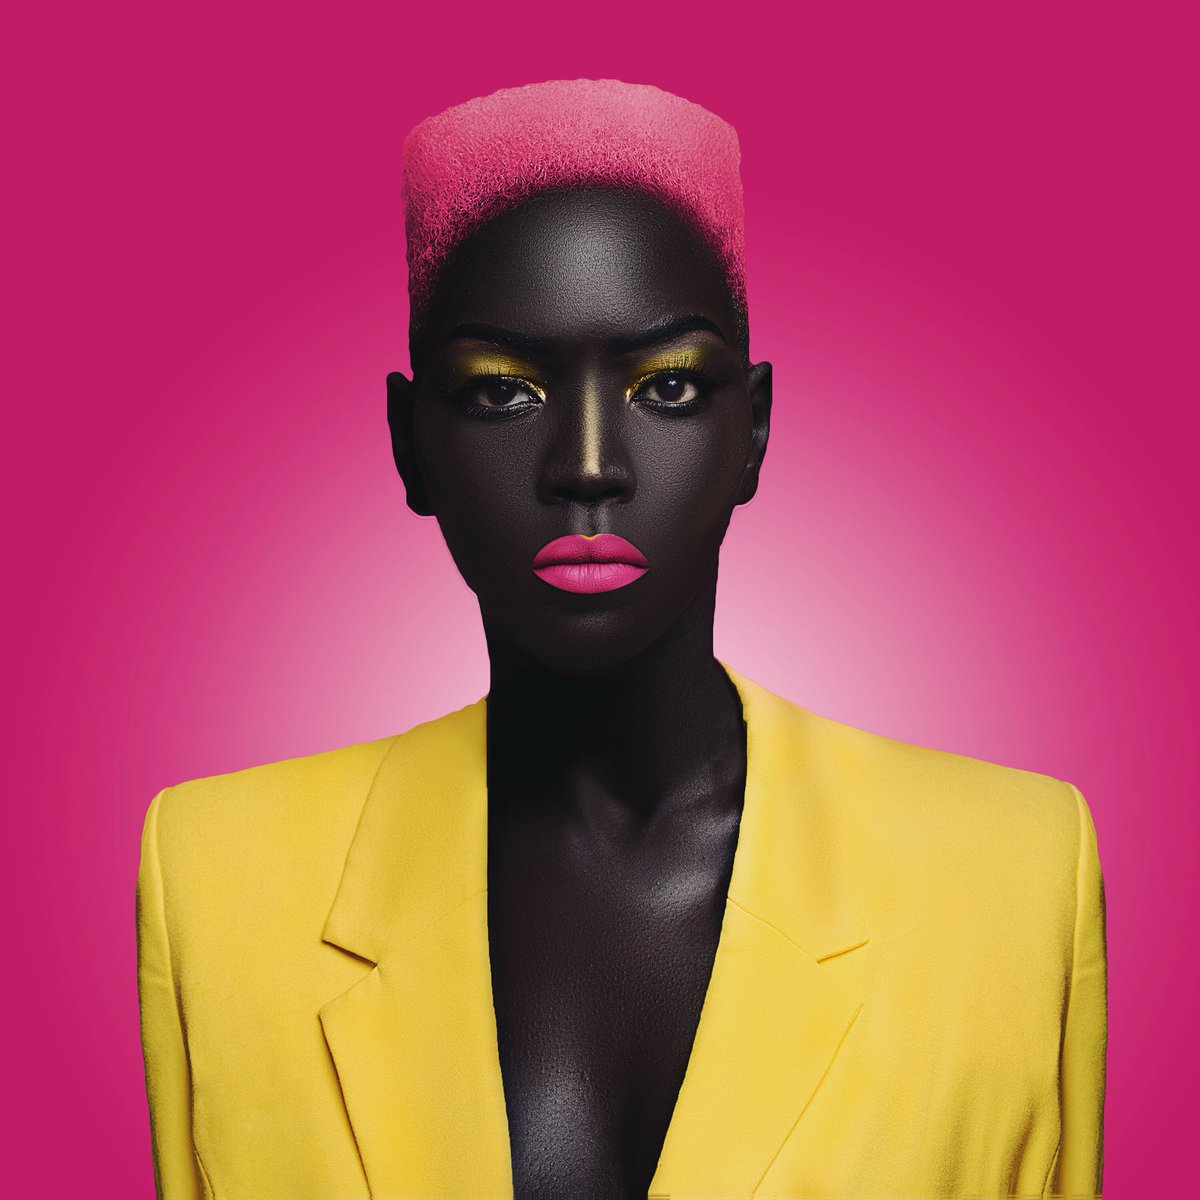 Sudanese Model Nyakim Gatwech Enters Guinness Book Of Records For Having The Darkest Skin Tone On Earth